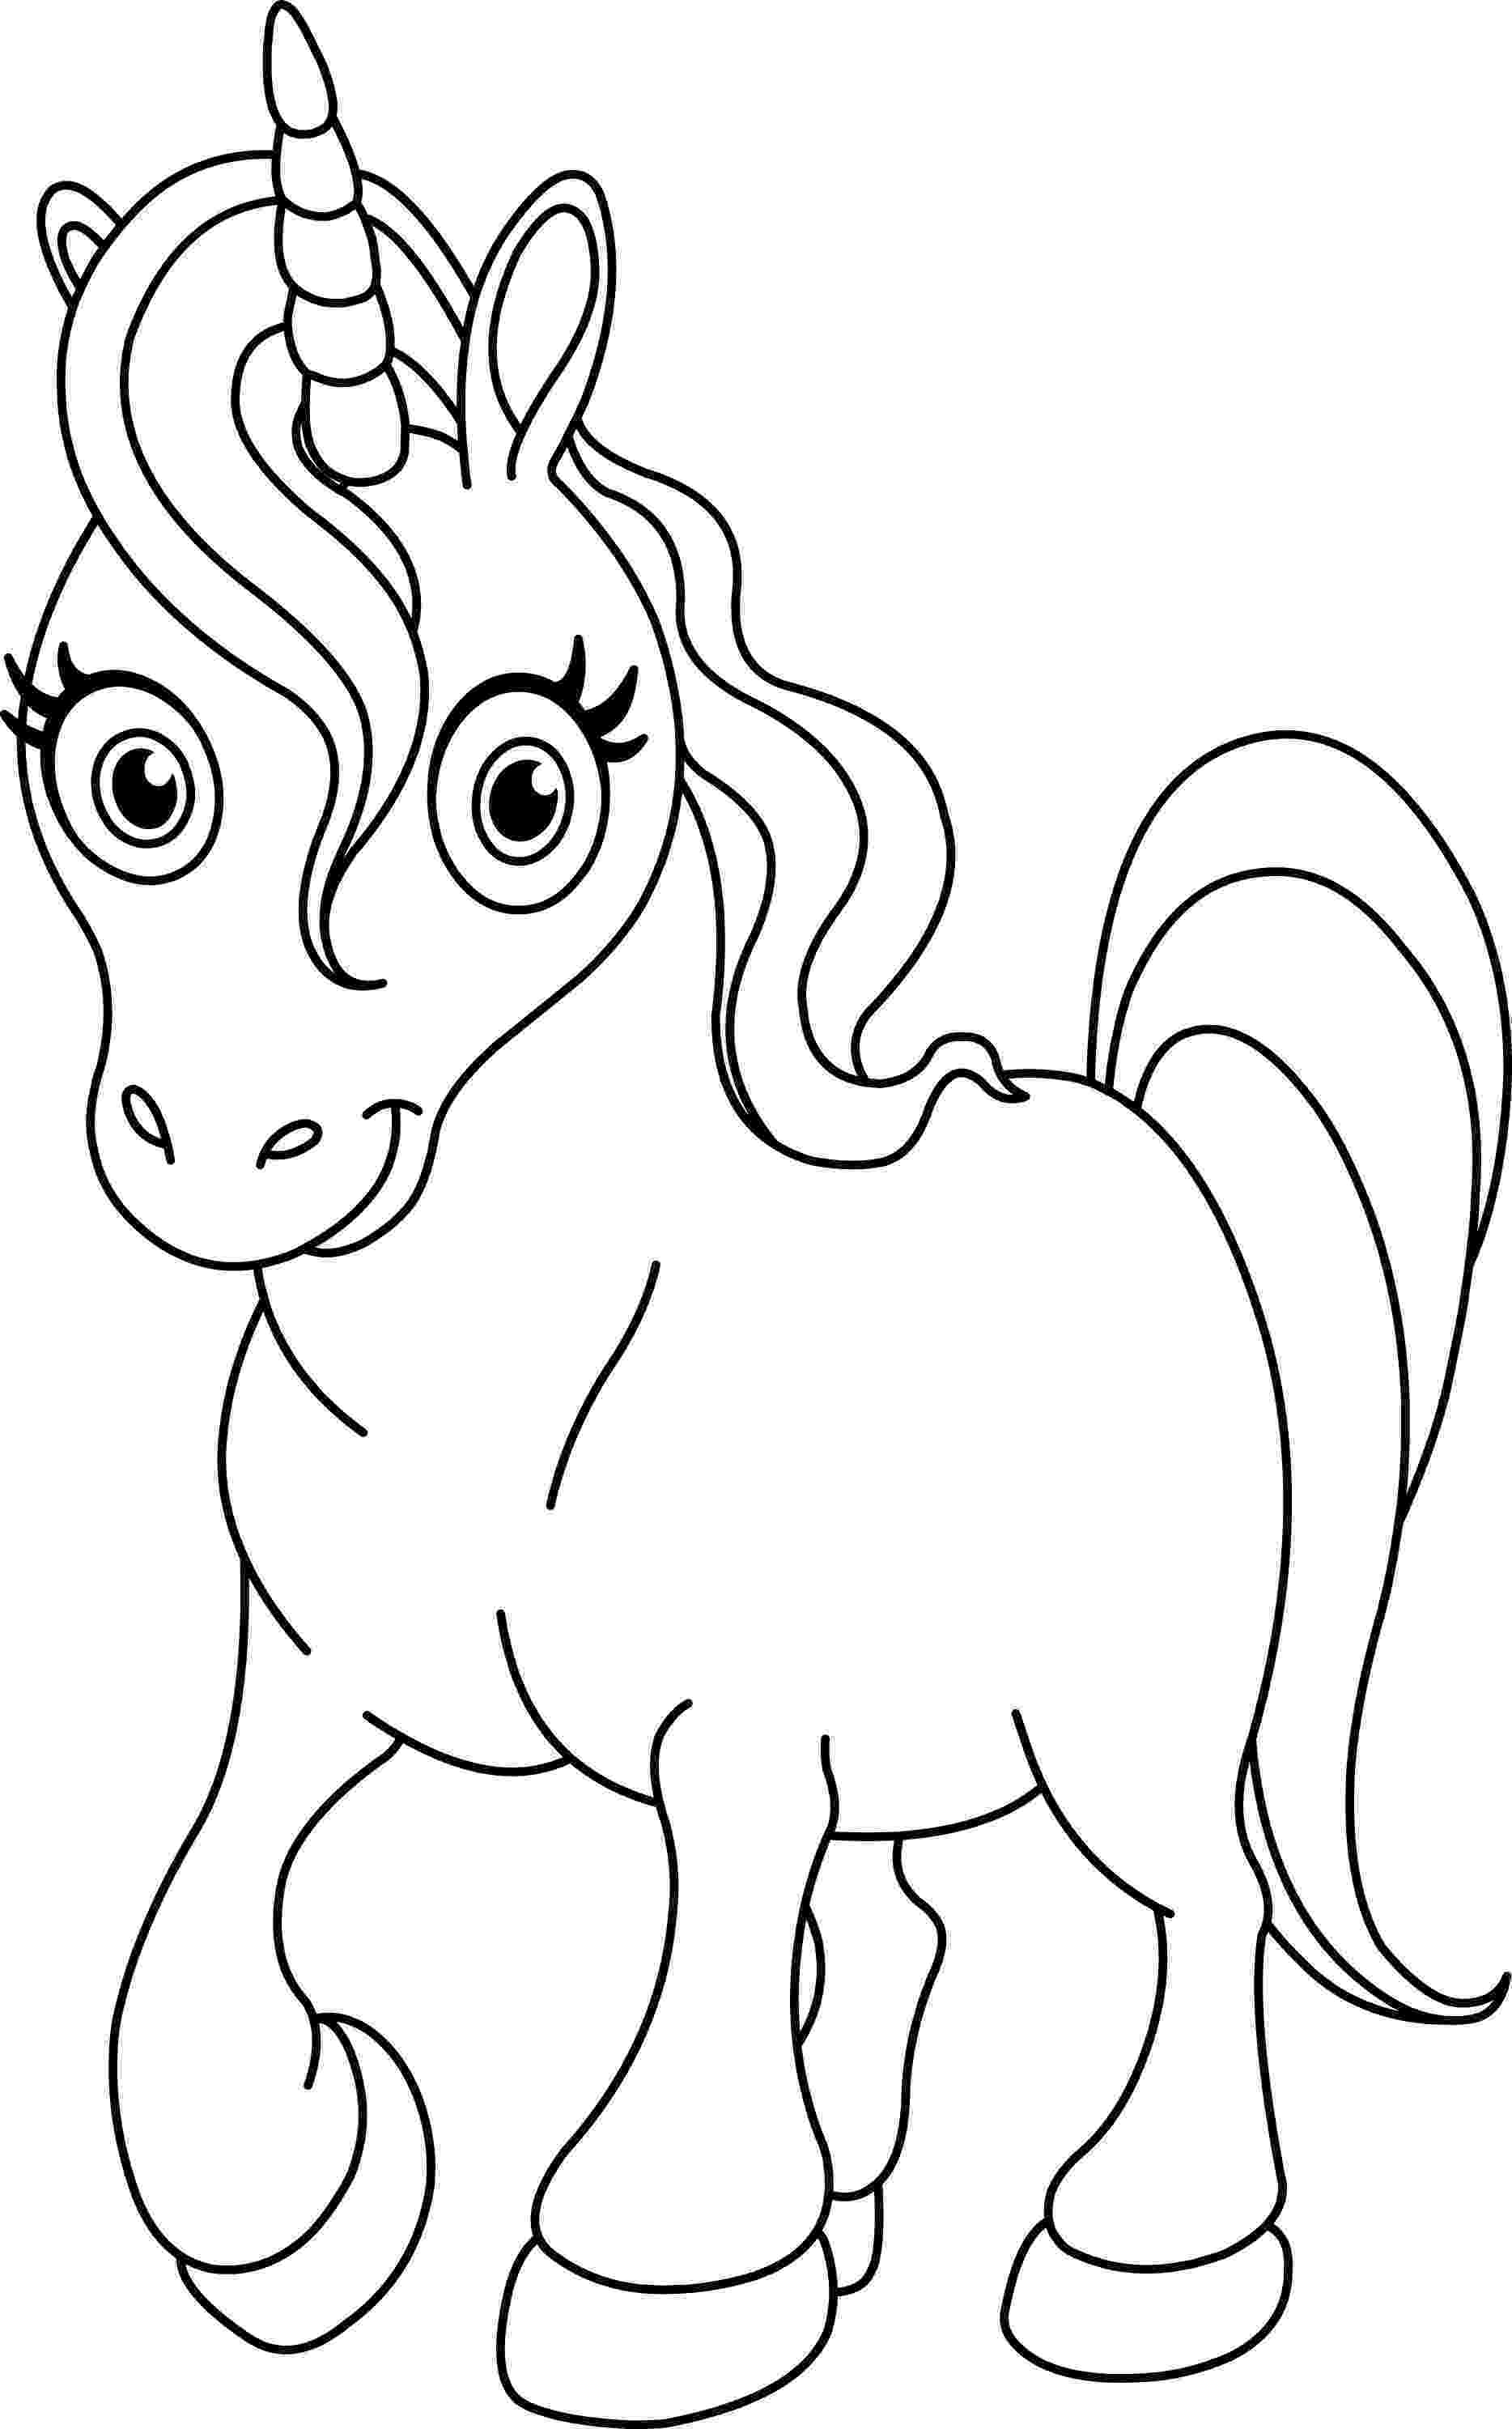 unicorn picture to color free printable unicorn coloring pages for kids picture unicorn color to